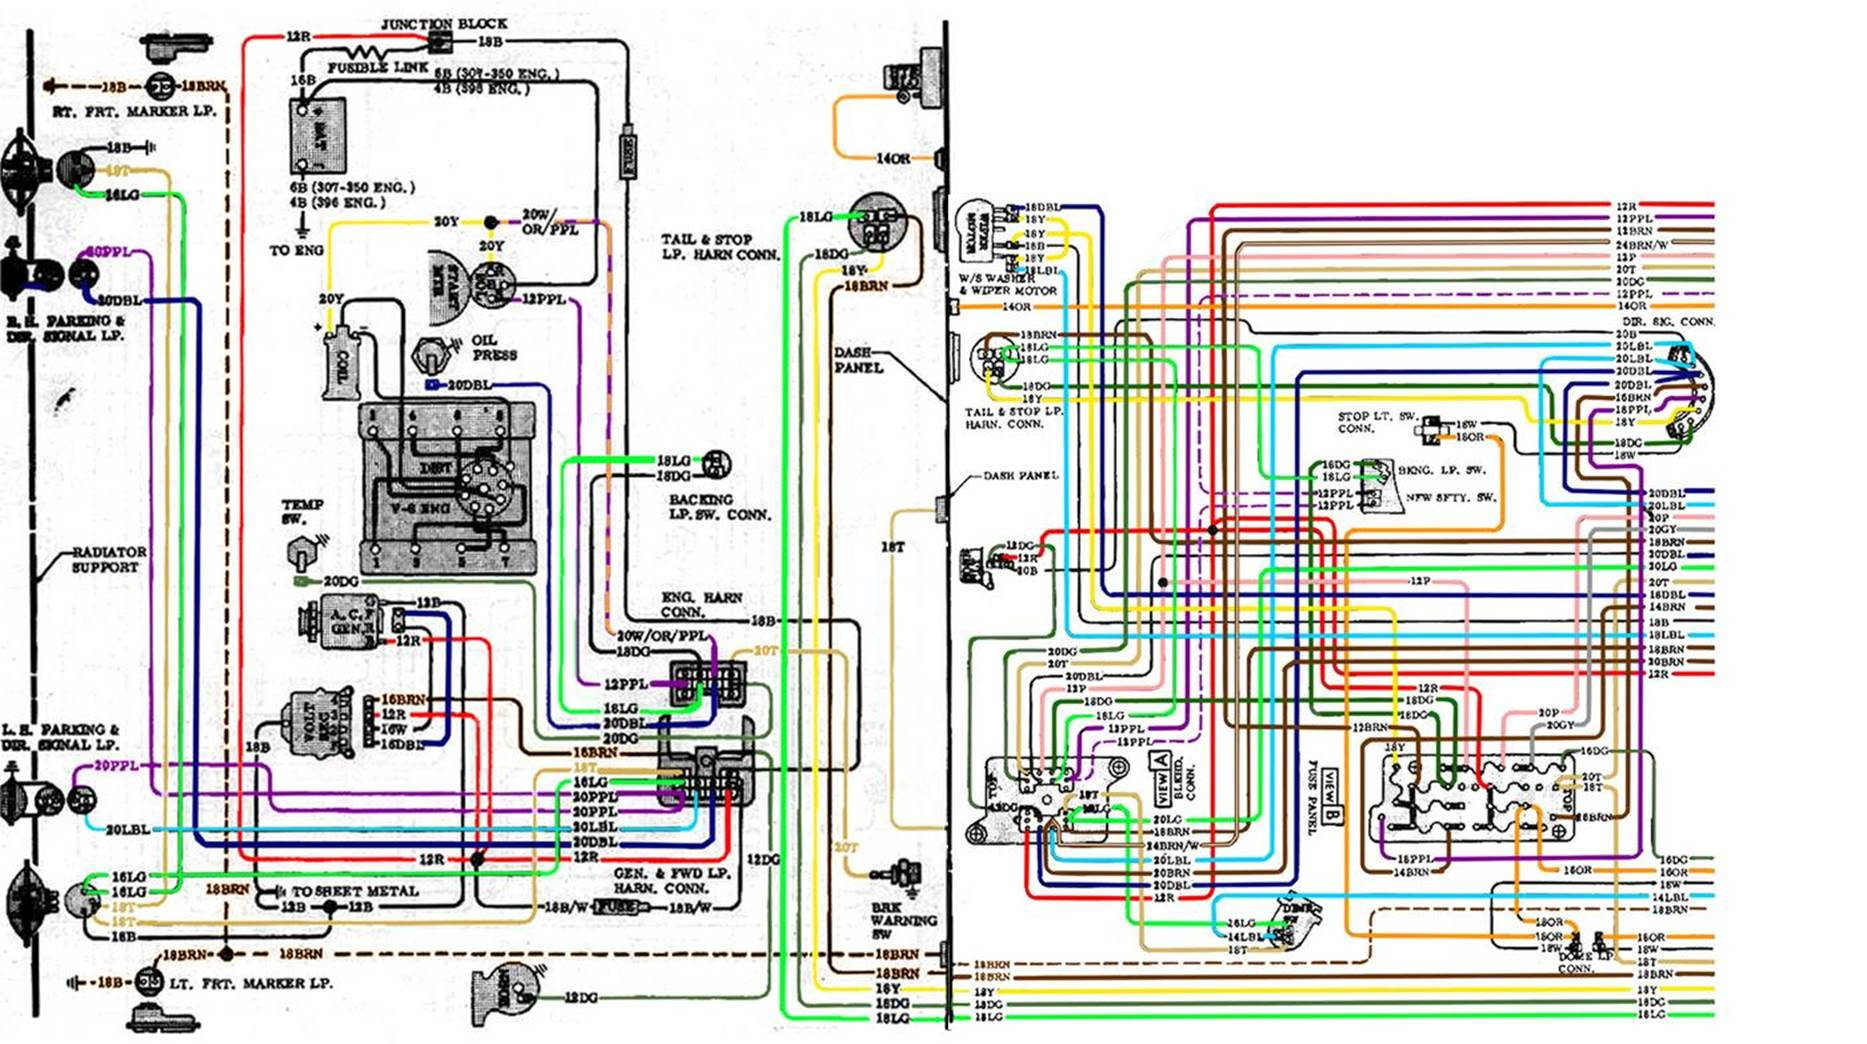 image002 67 72 chevy wiring diagram 1967 chevy ii wiring diagram at honlapkeszites.co